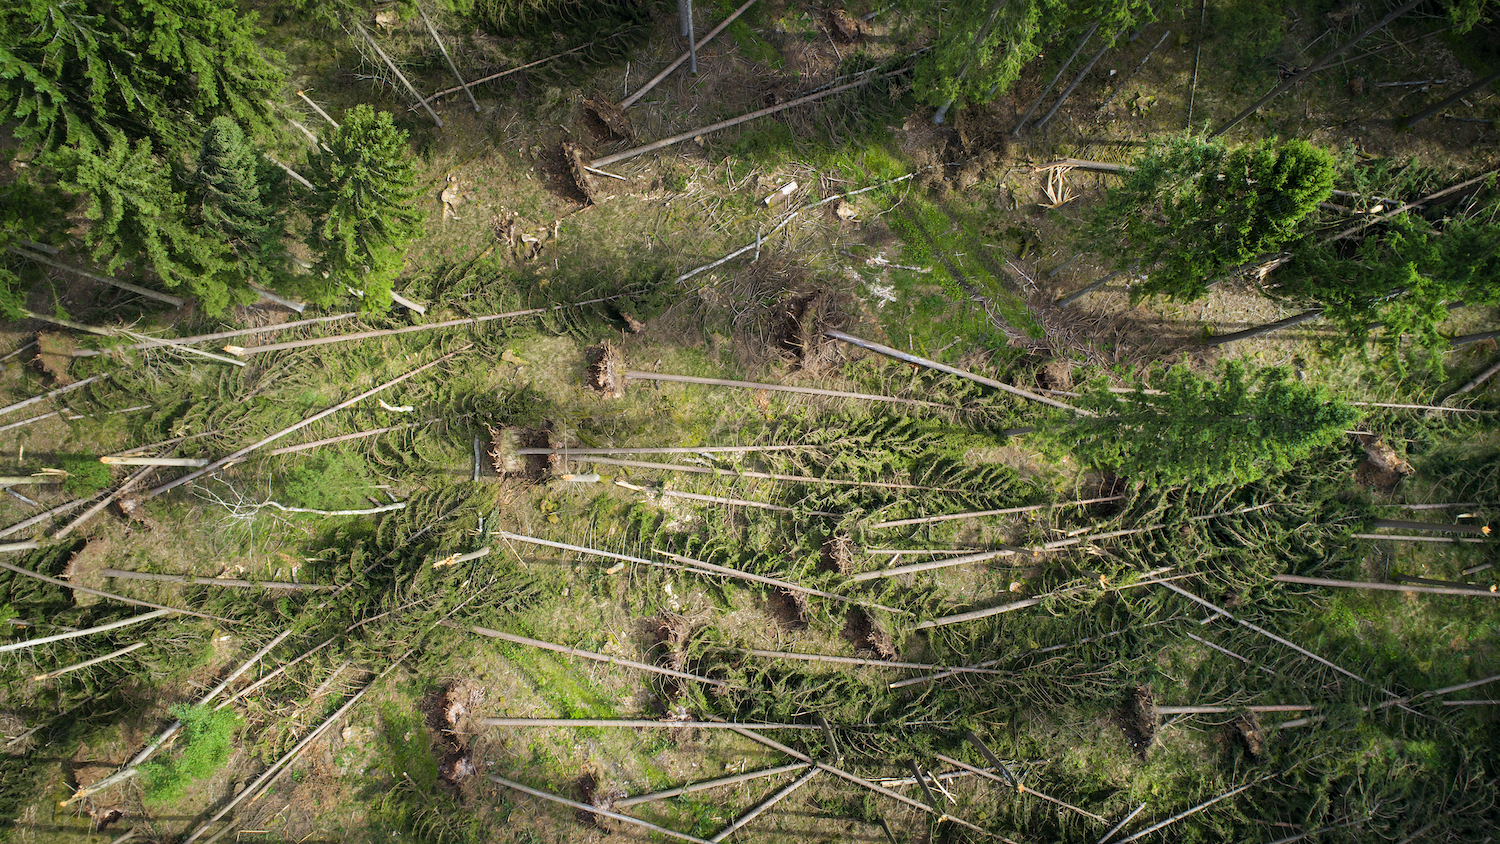 Hurricanes killing trees - Forestry and Environmental Resources at NC State University